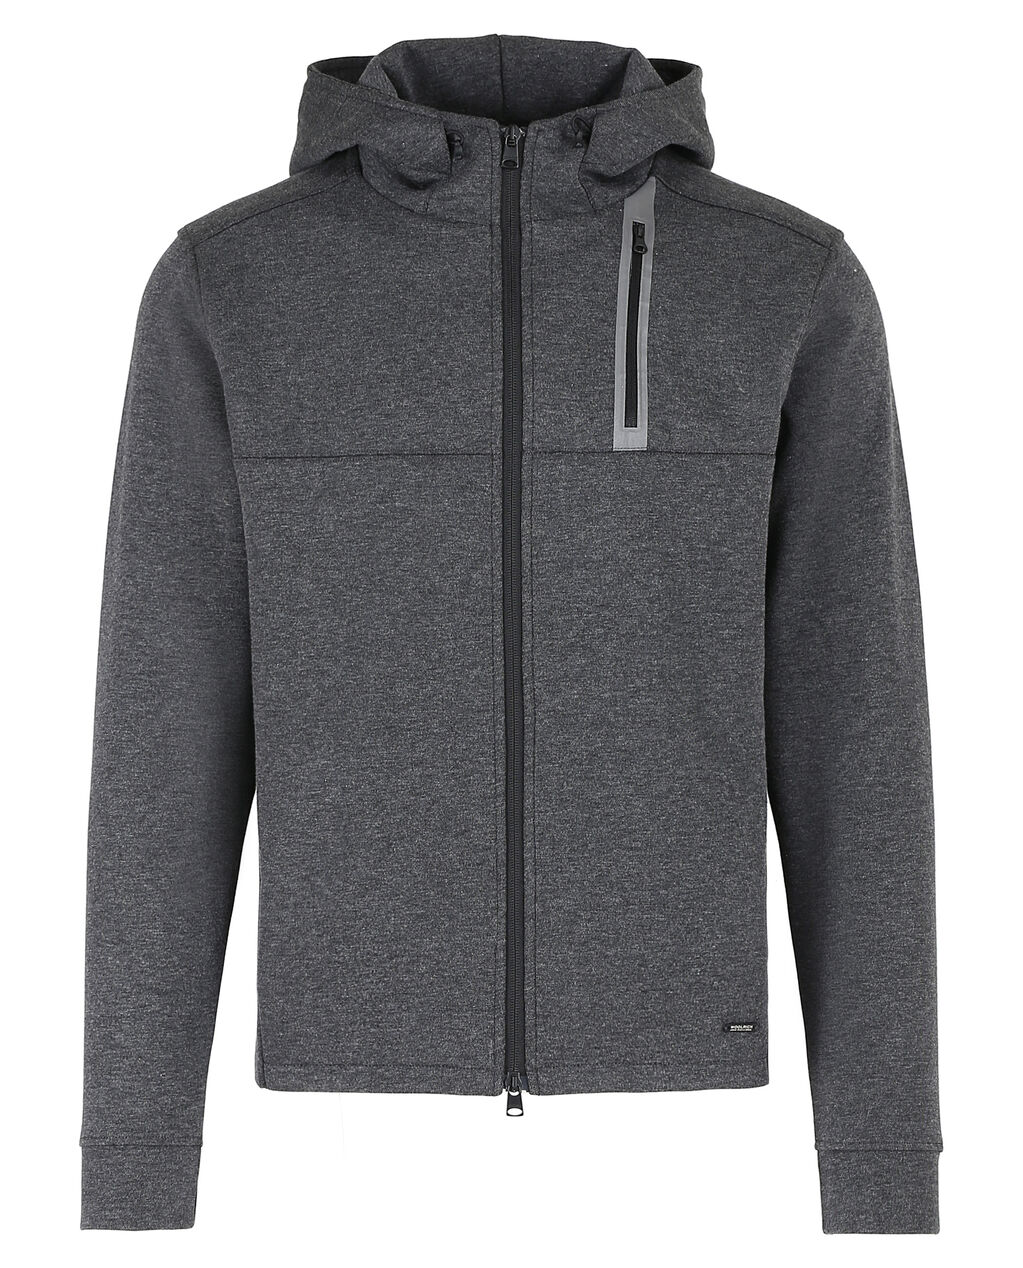 Bonded Jersey Fz Hoodie